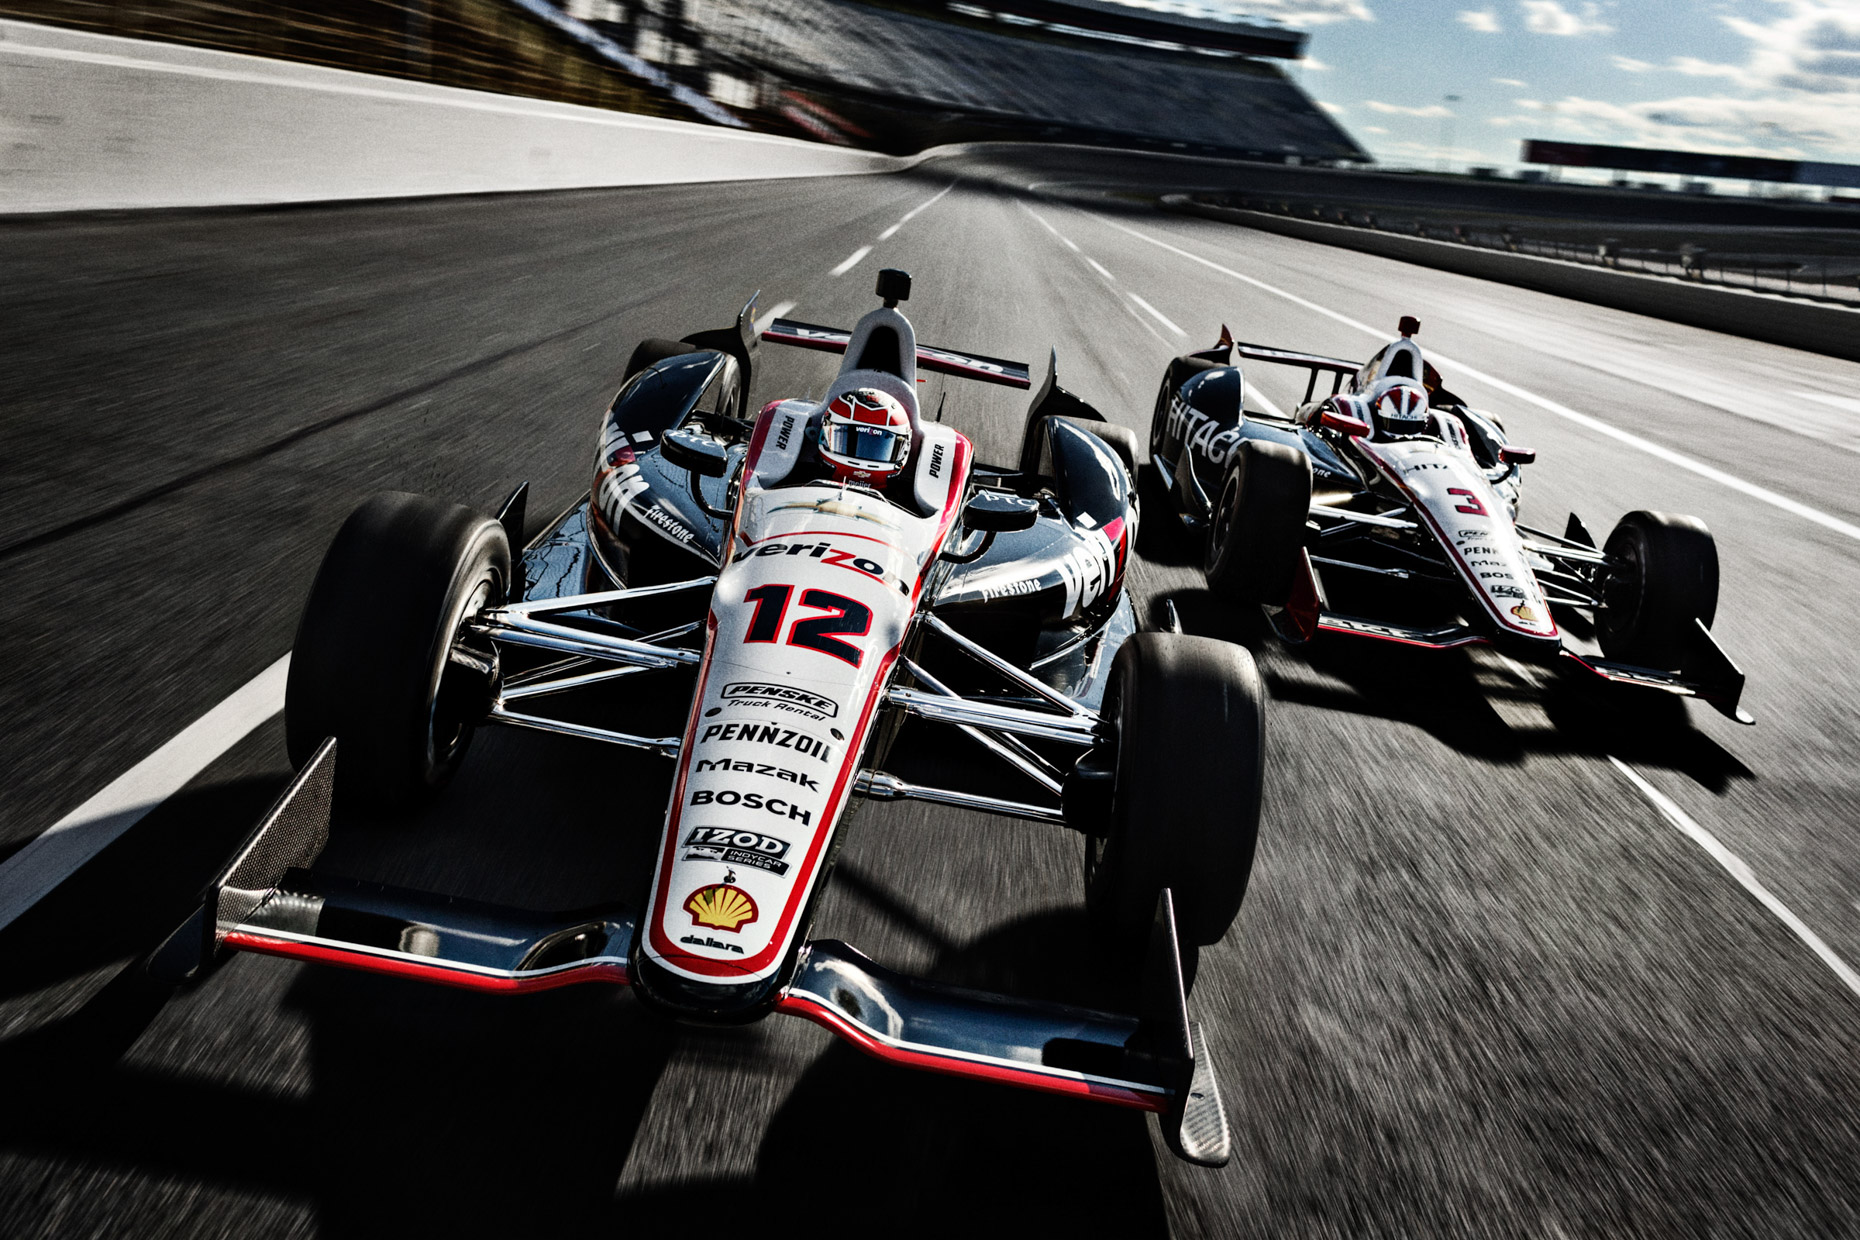 Indycar racecar driver Will Power by sport photographer Andy Batt